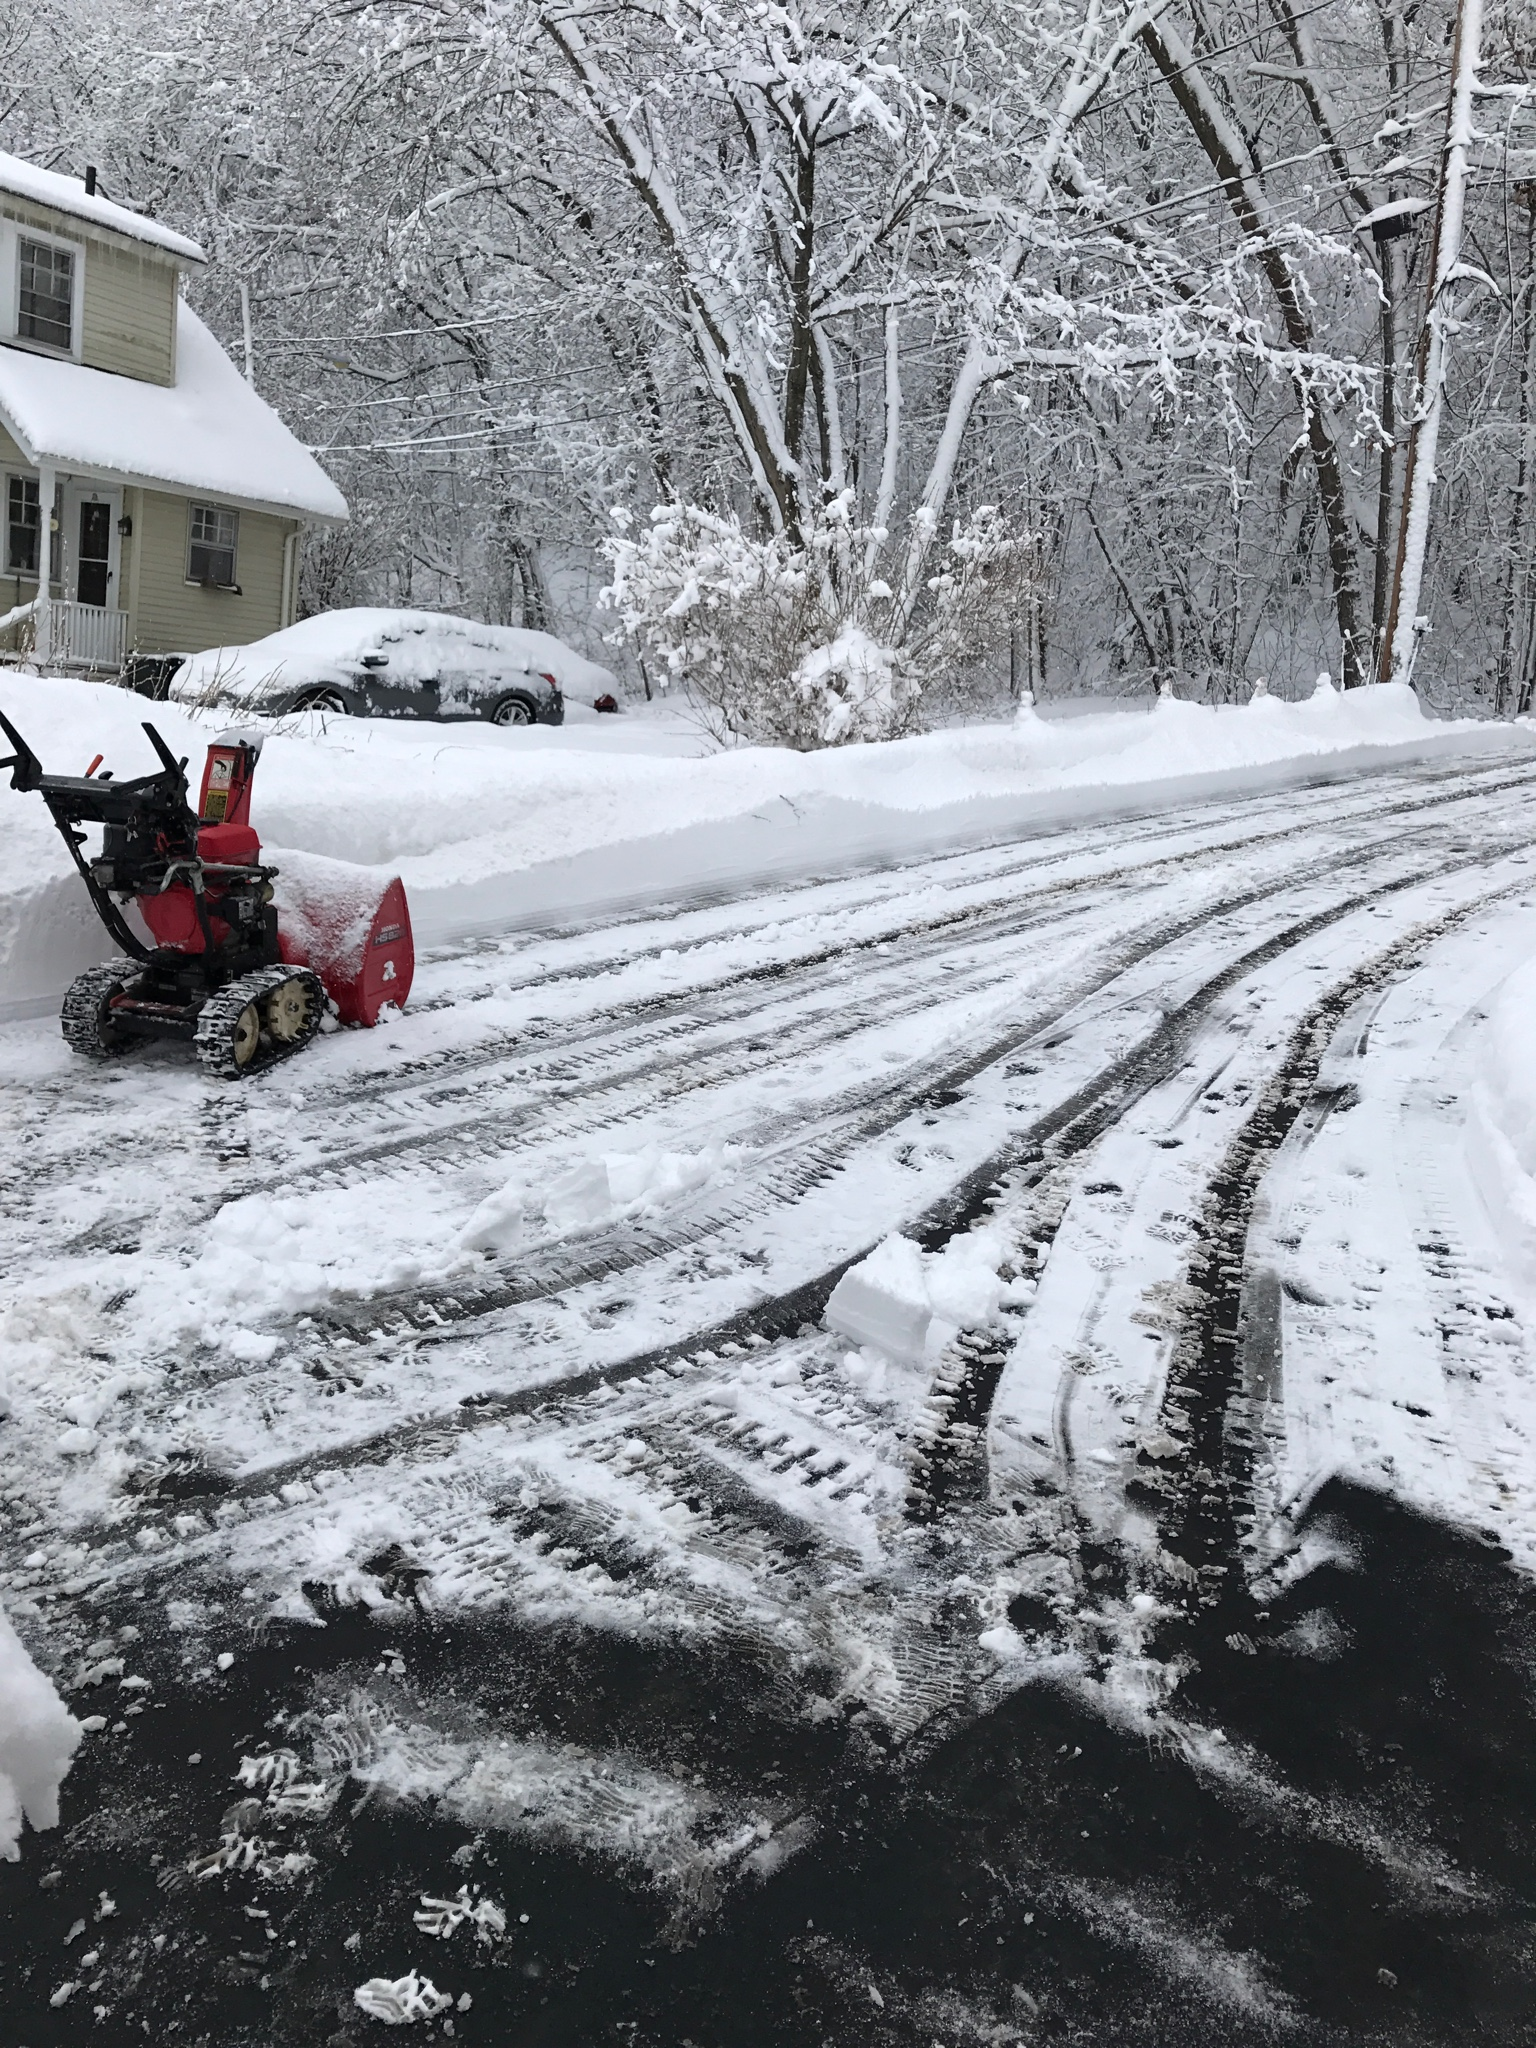 Most reliable snow blower? - The Garage Journal Board